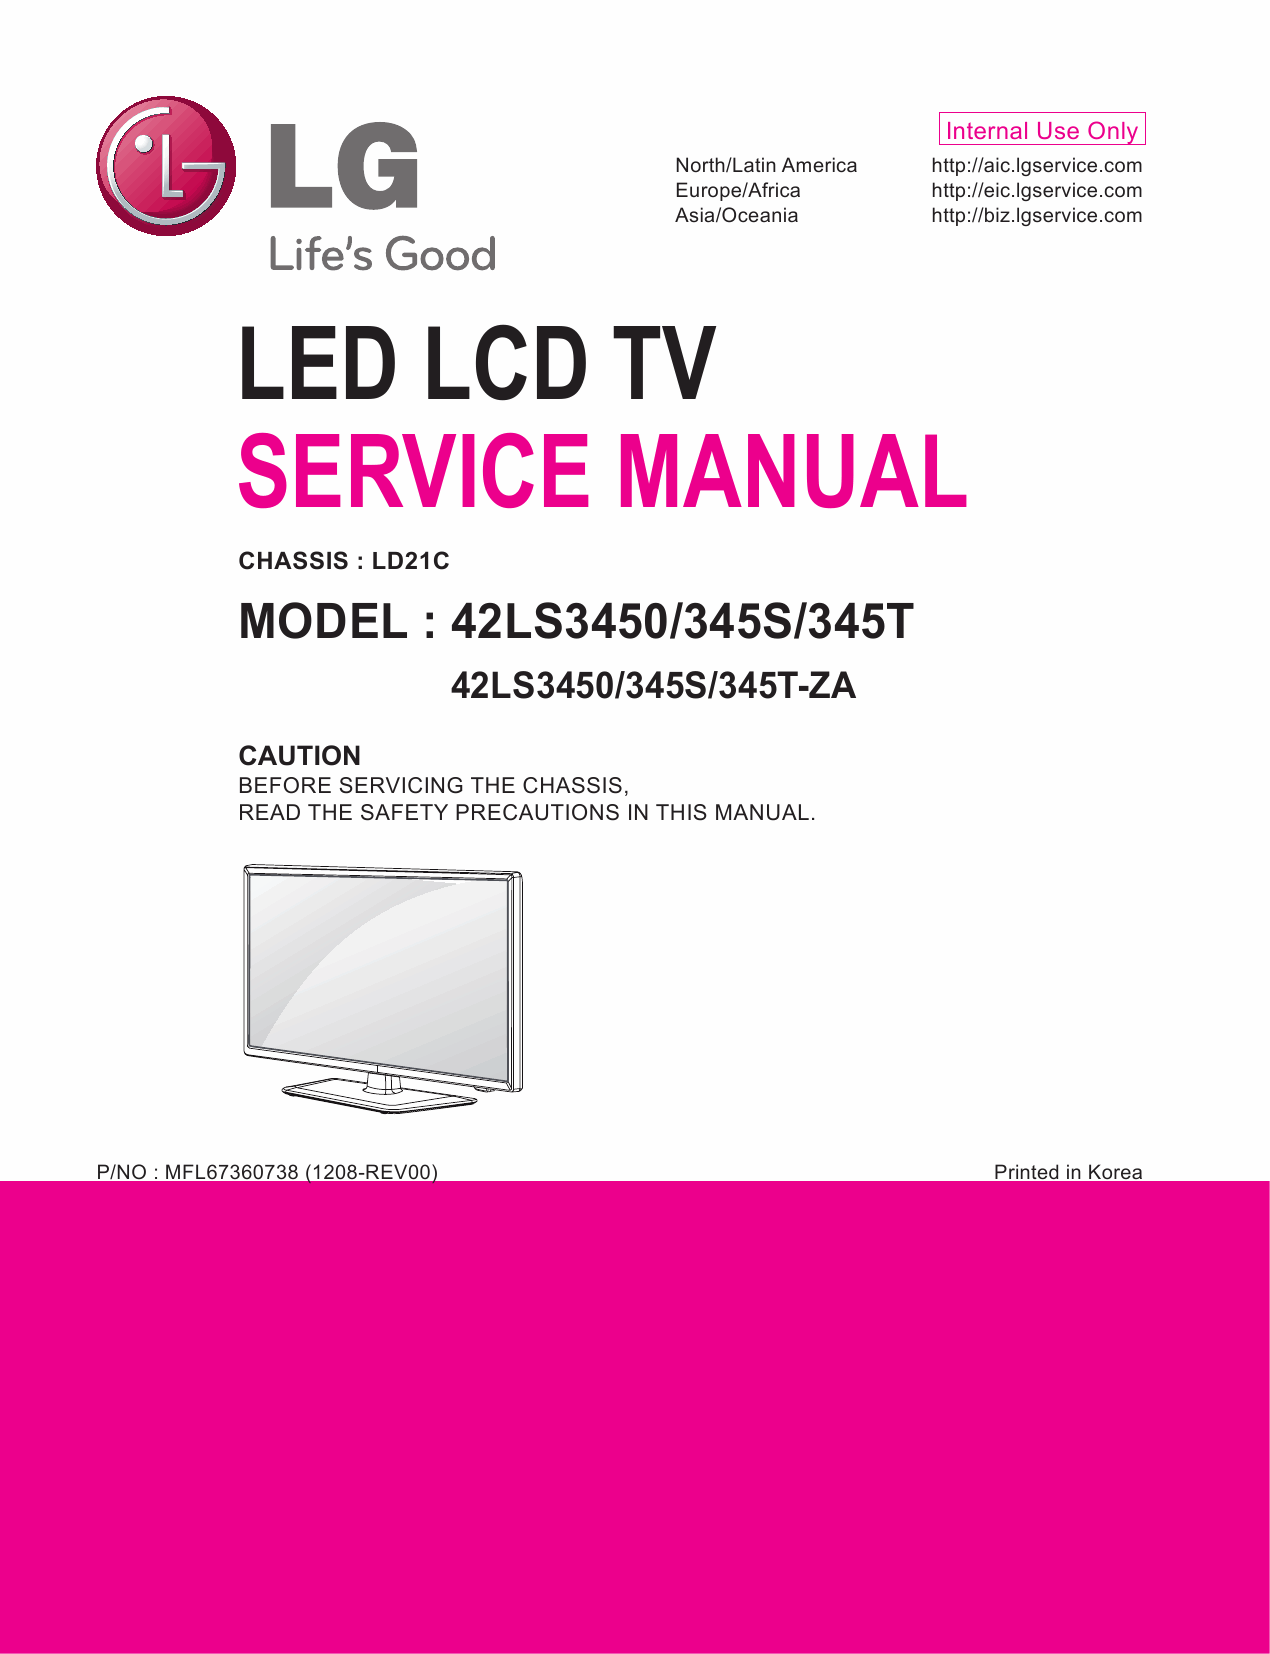 LG_LED_TV_42LS3450_345S_345T_Service_Manual_2012_Qmanual.com-1